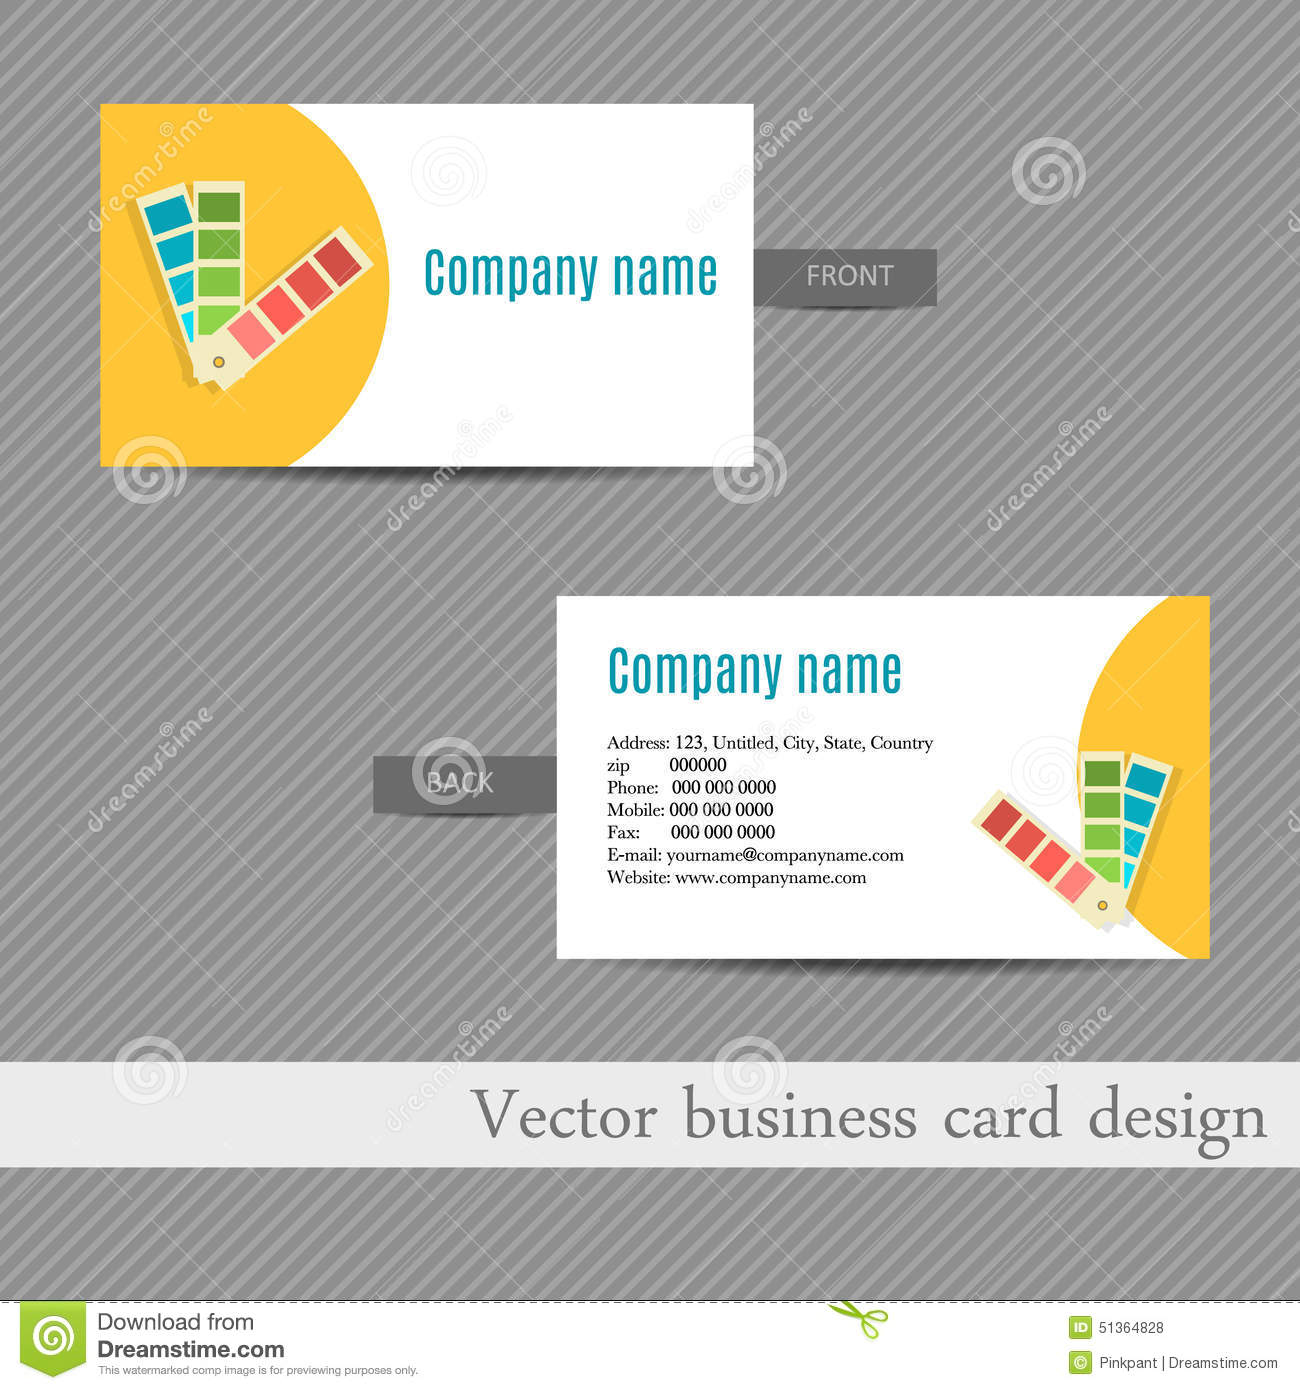 Business card design for an advertising agency stock illustration business card design for an advertising agency magicingreecefo Choice Image